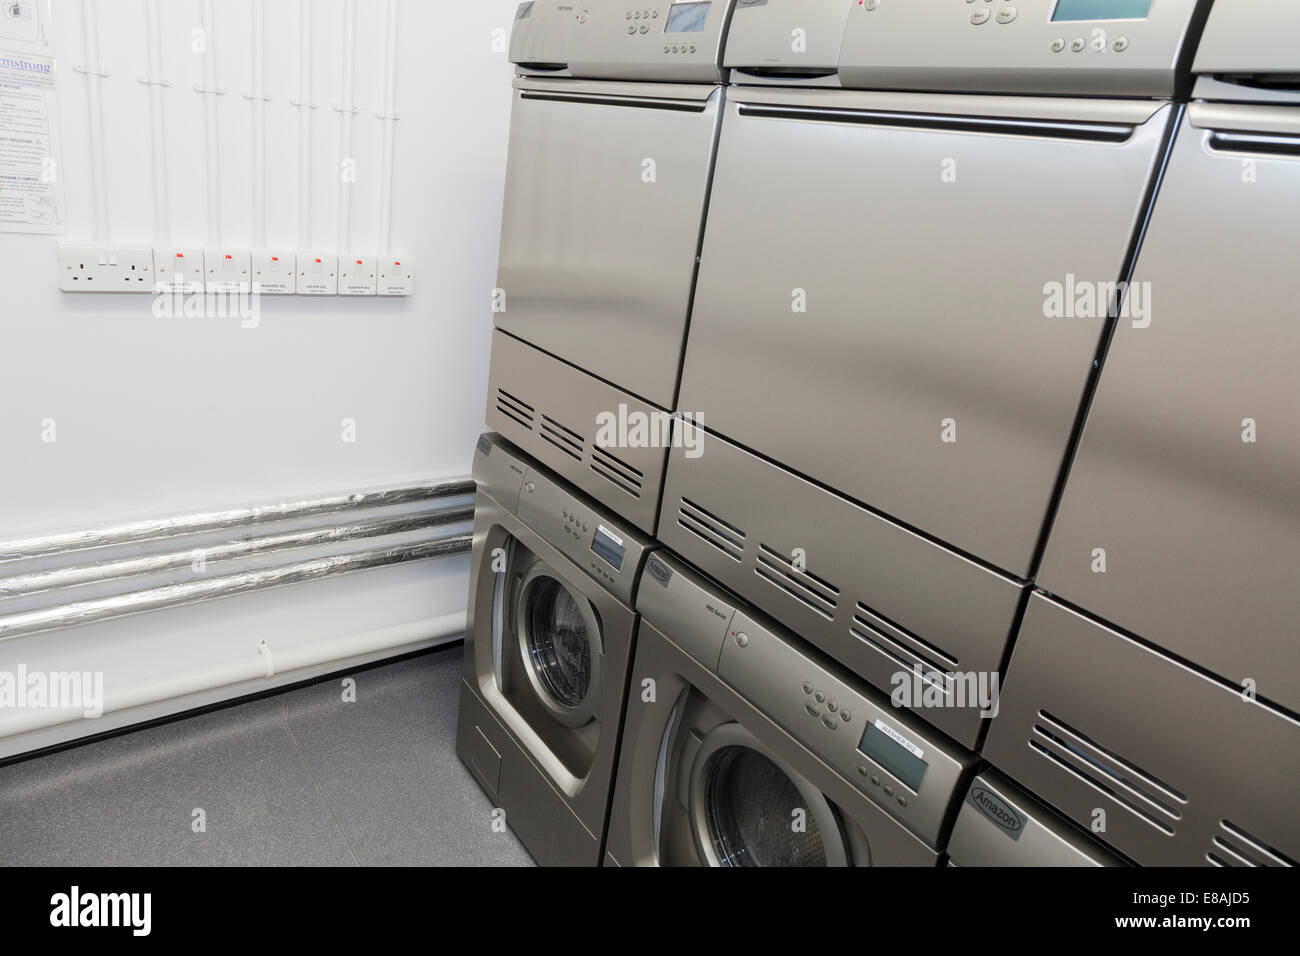 Washing machines and tumble dryers in Communal Laundry room. - Stock Image